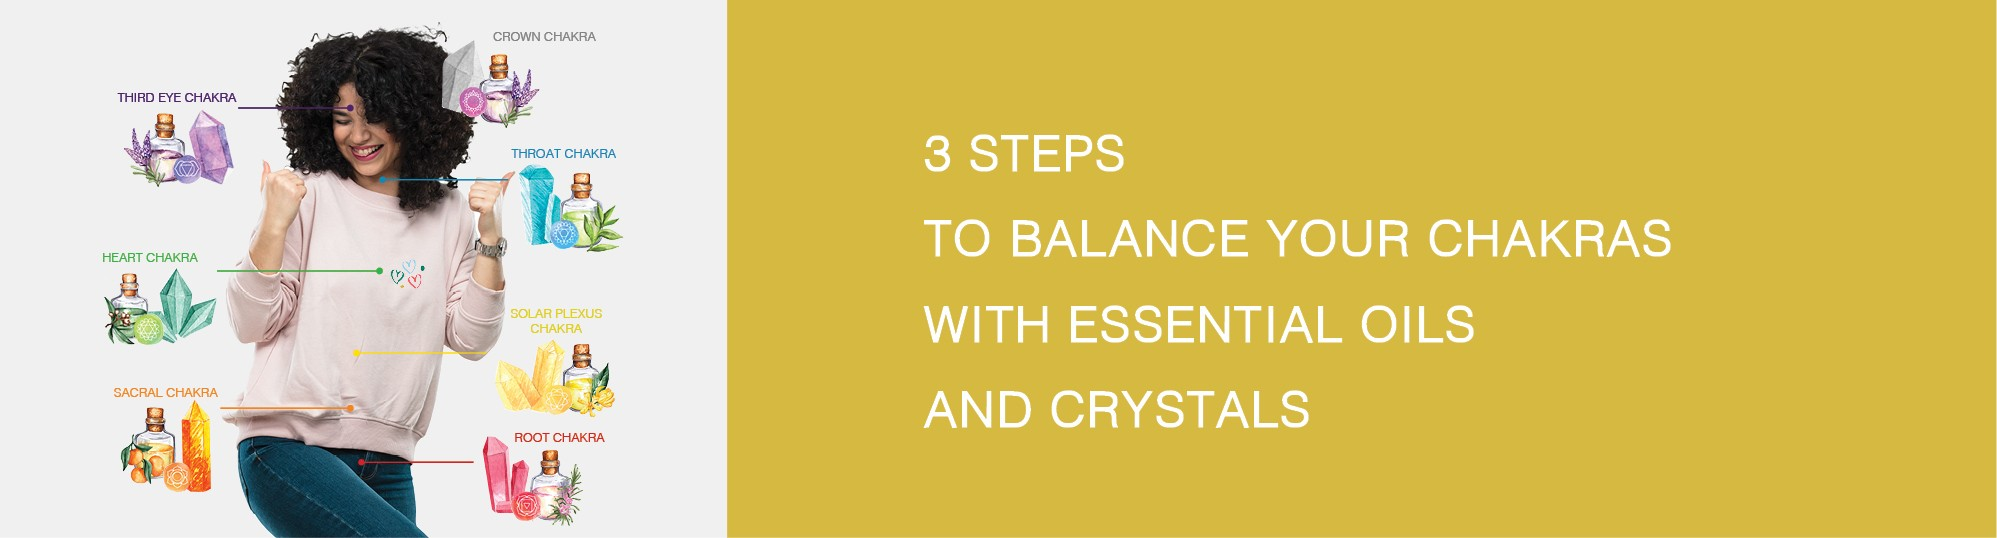 3 STEPS TO BALANCE YOUR CHAKRAS WITH ESSENTIAL OILS AND CRYSTALS